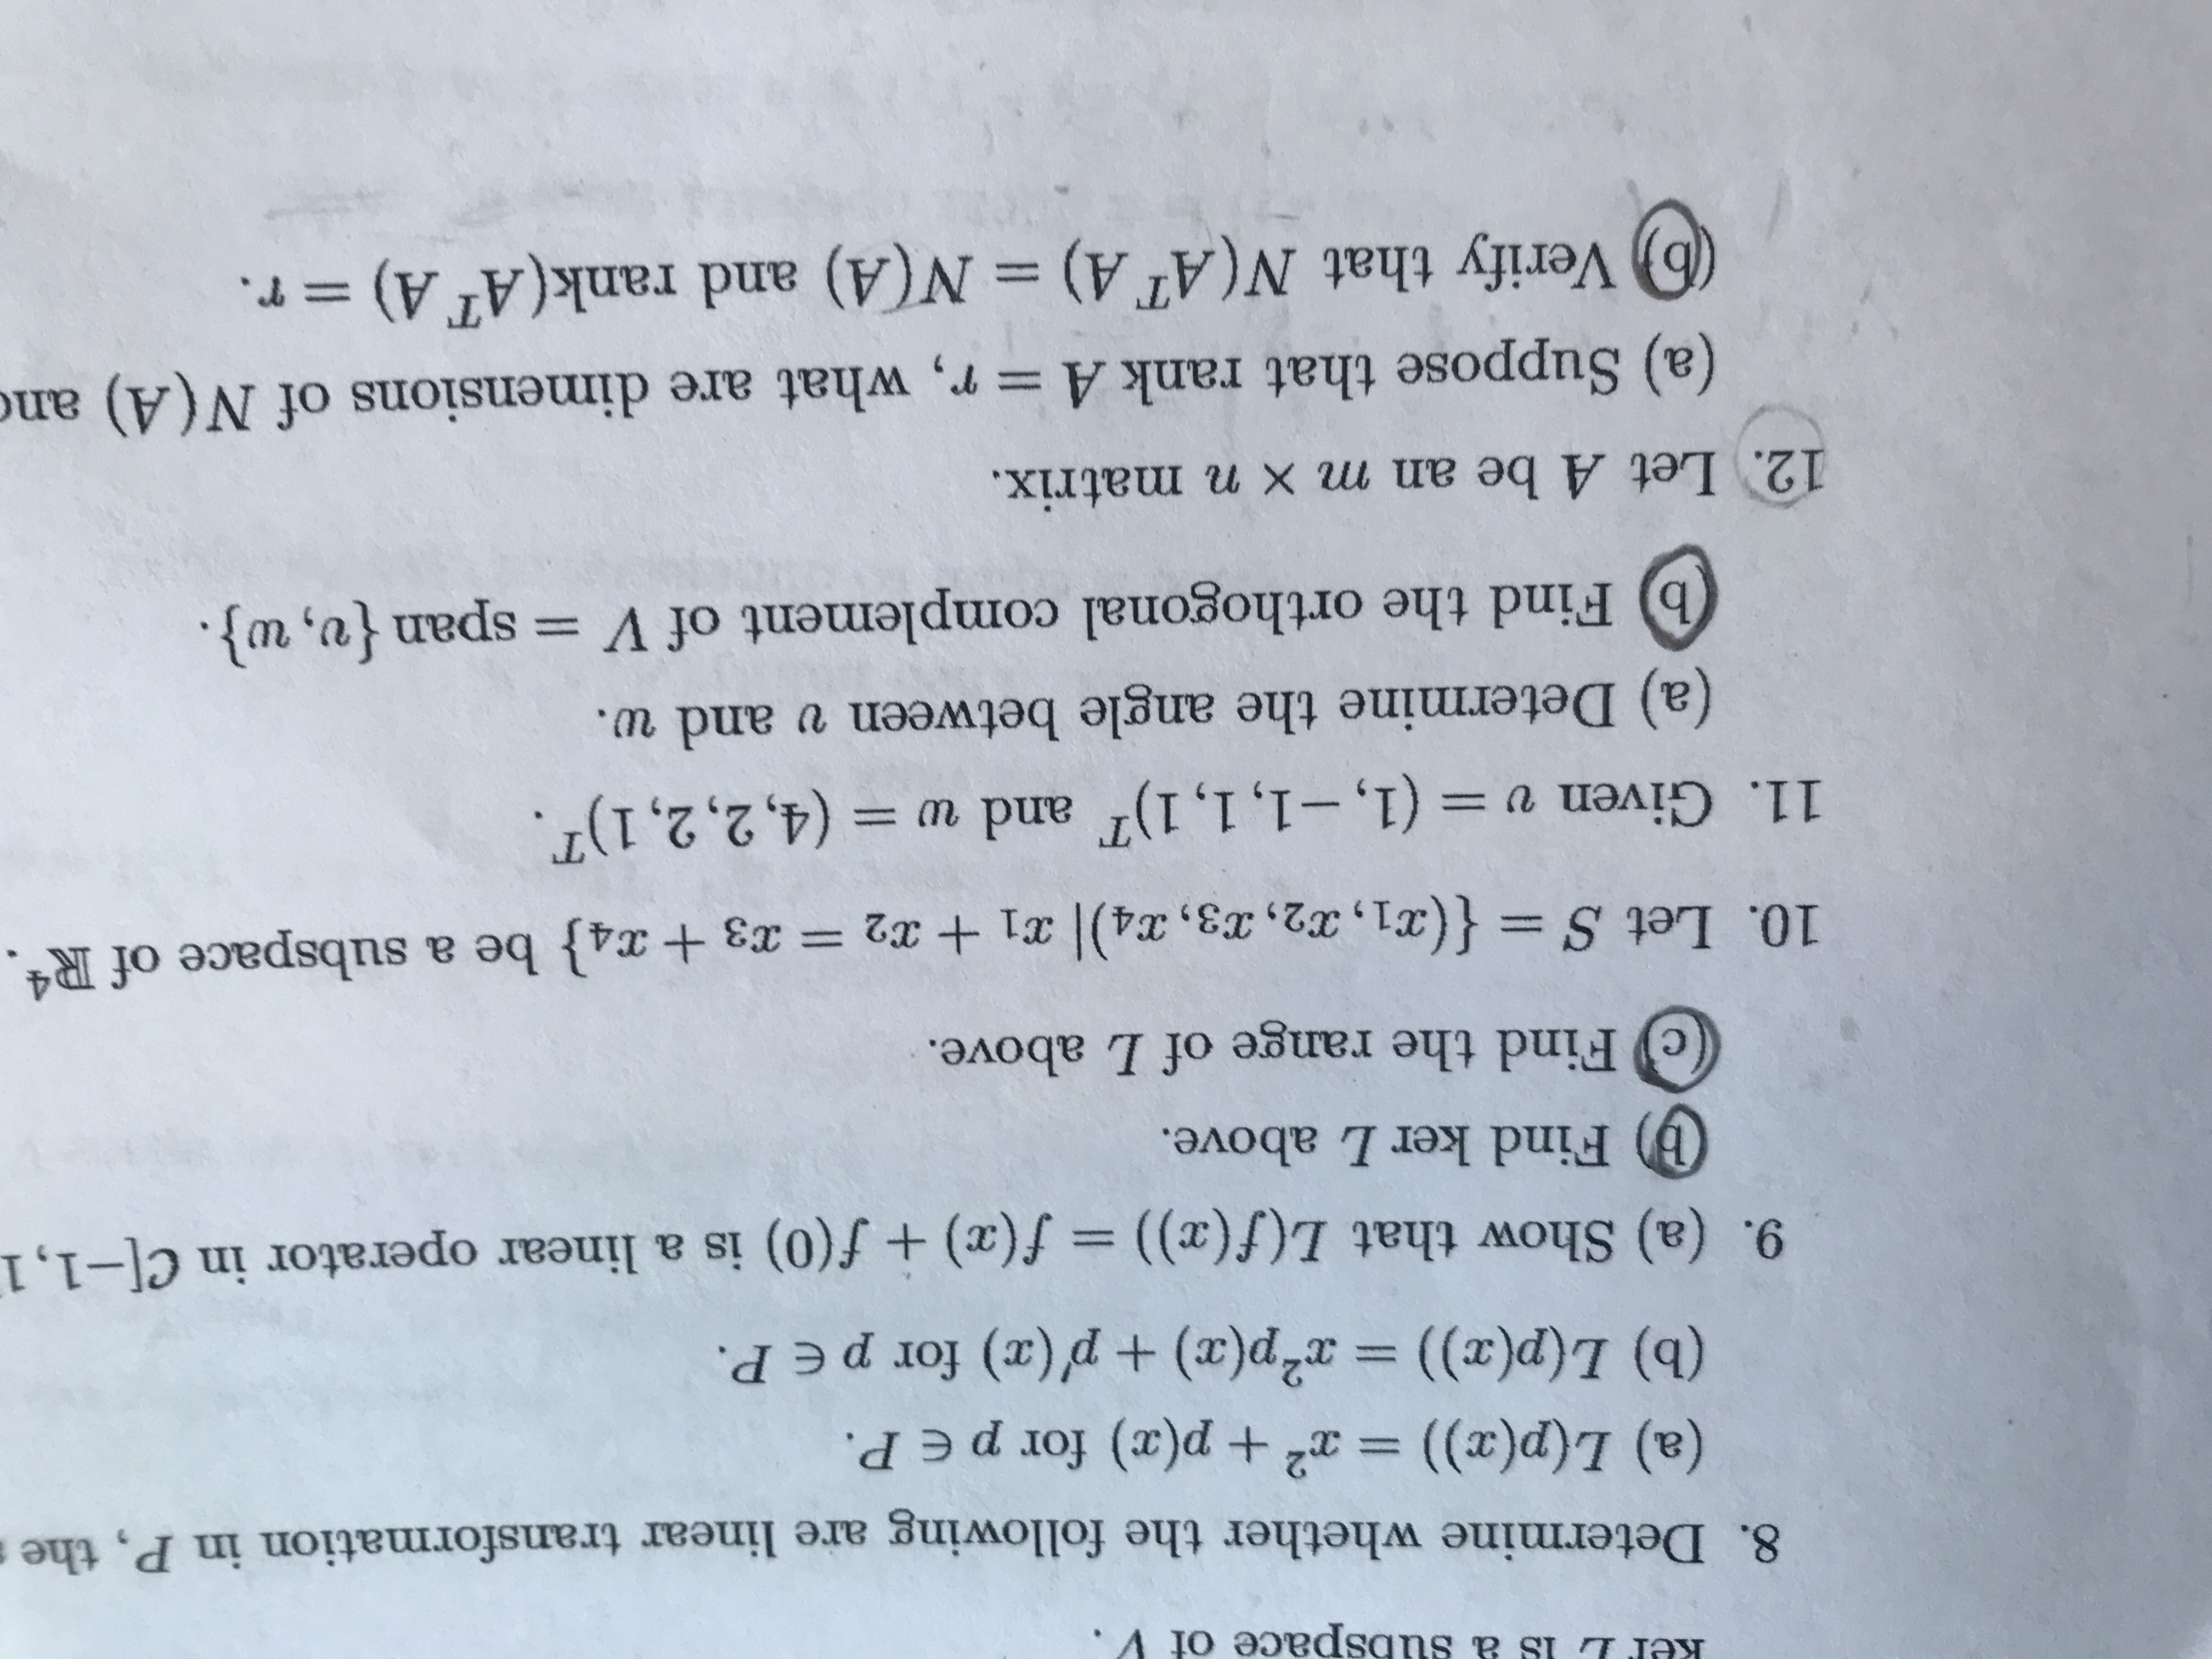 ubspace of V 8. Determine whether the following are linear transformation in P, the (a) L(p(x)) = x +p(x) for p e P. (b) L(p(x)) x2p(x) p(x) for peP. 9. (a) Show that L(f(x)) = f(x) + f(0) is a linear operator in C[-1,1 (b) Find kerL above. Find the range of L above. 10. Let S {(x1, 2, 3 , X4)| 31 + x2 = 3 + x4} be a subspace of R4. 11. Given v (1,-1, 1, 1) and w (4,2,2,1). (a) Determine the angle between v and w. b Find the orthogonal complement of V = span {v, w}. 12. Let A be an m x n matrix. (a) Suppose that rank A = r, what are dimensions of N(A) and b Verify that N(AT A) N(A) and rank(AT A) r.